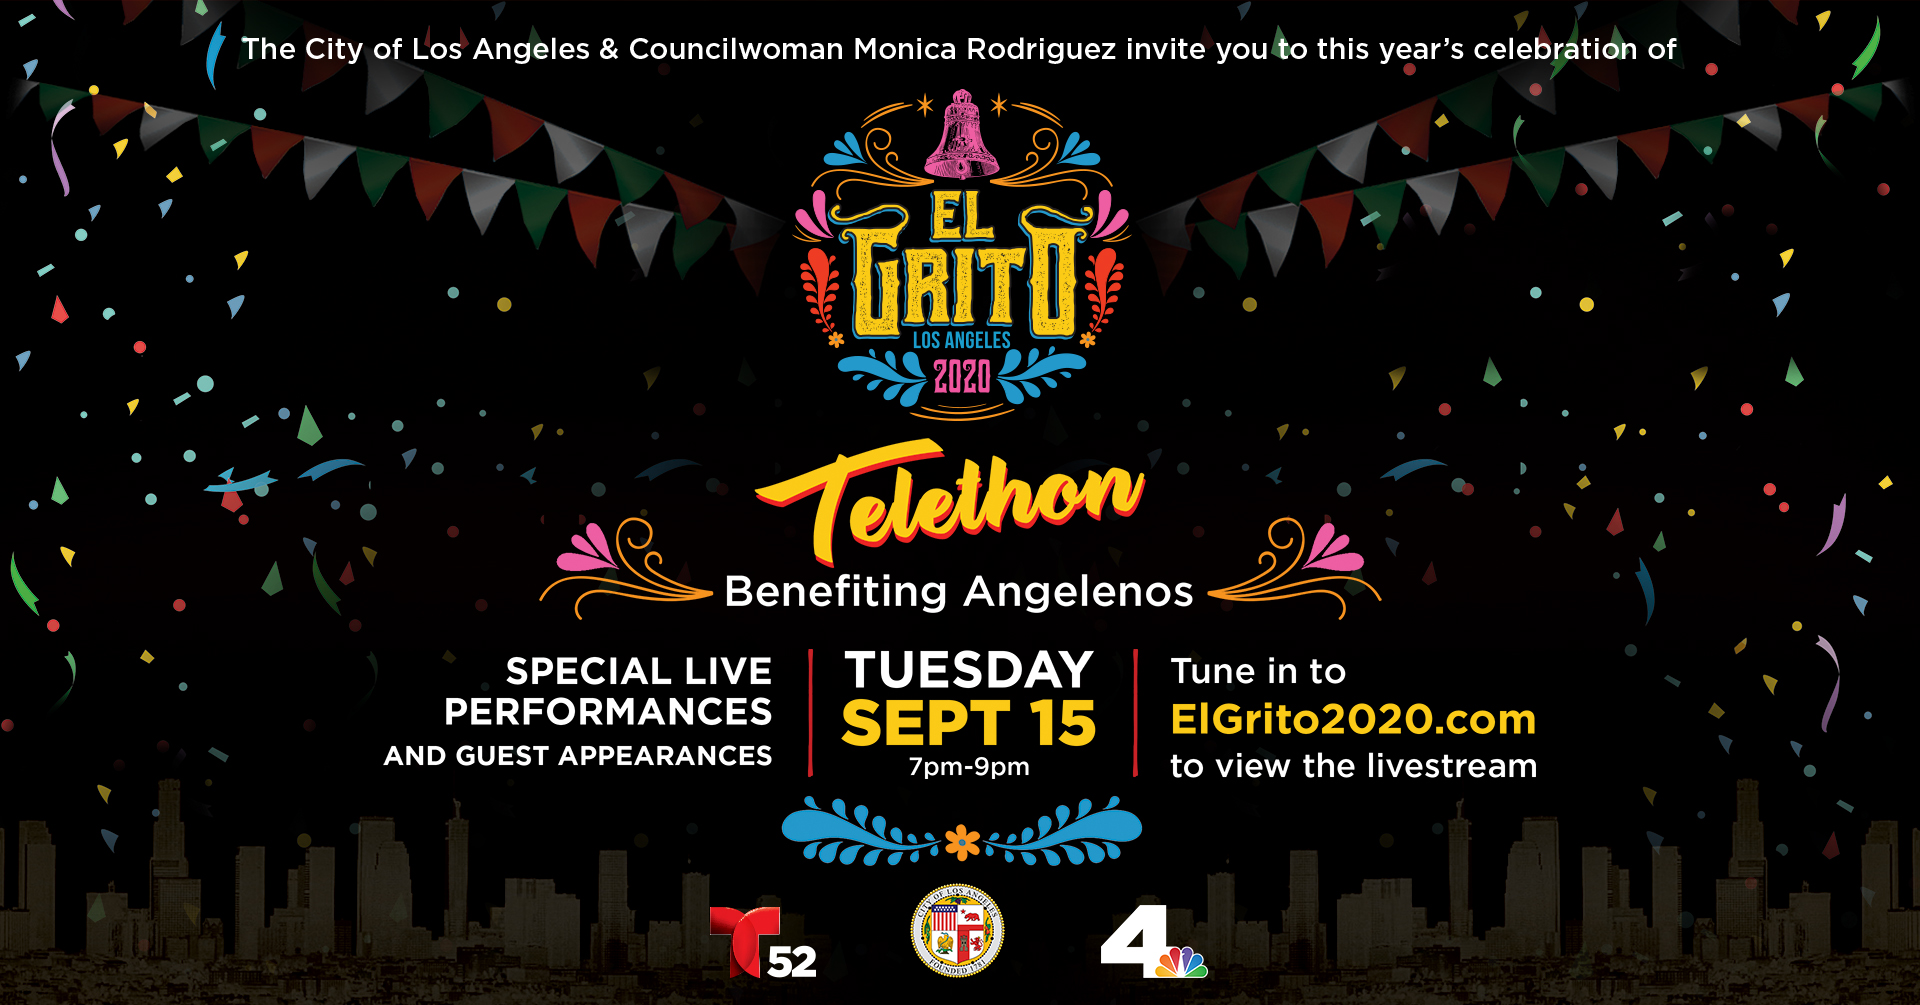 El Grito 2020 Telethon - September 15 from 7pm-9pm